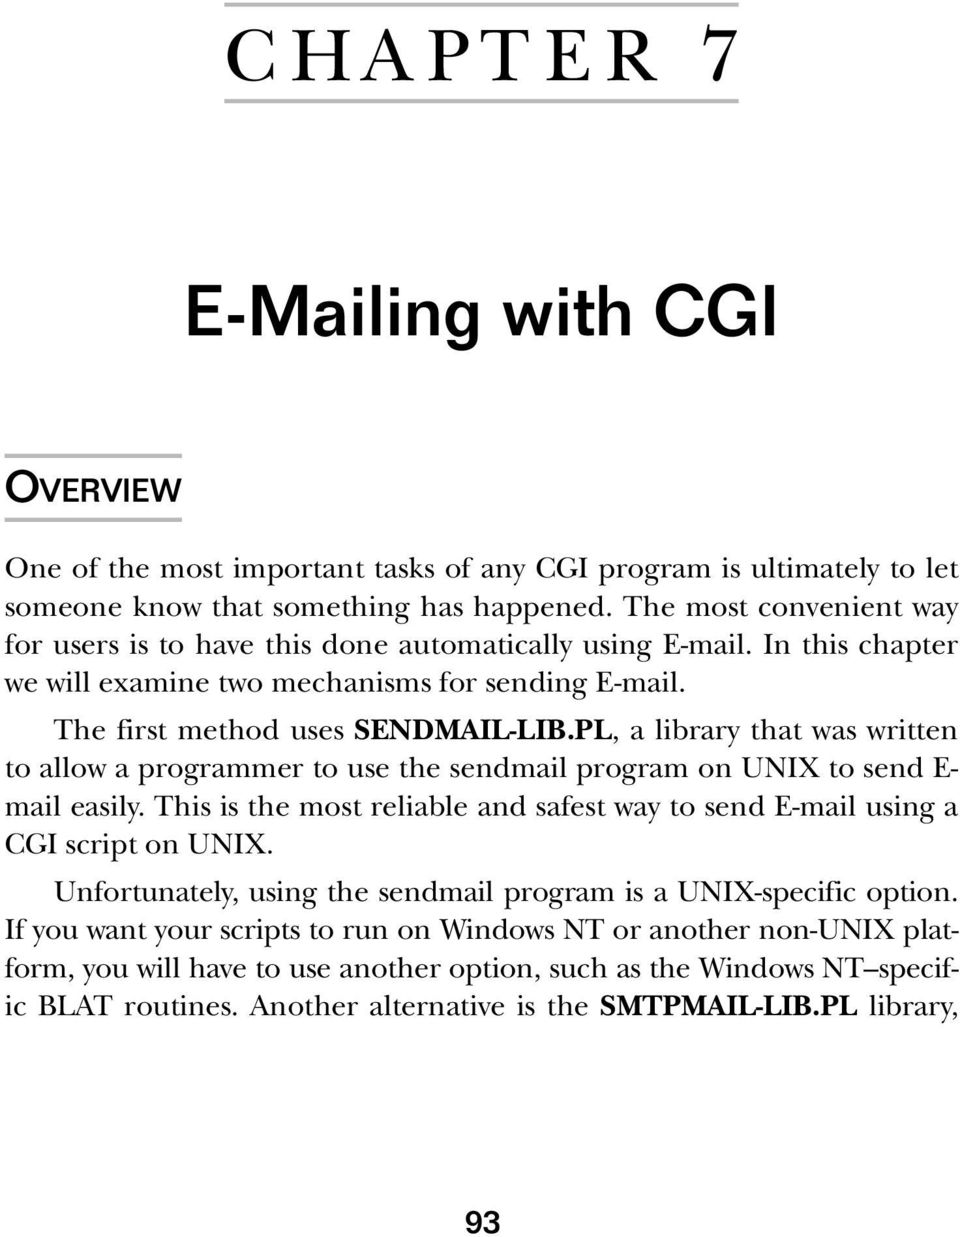 PL, a library that was written to allow a programmer to use the sendmail program on UNIX to send E- mail easily. This is the most reliable and safest way to send E-mail using a CGI script on UNIX.